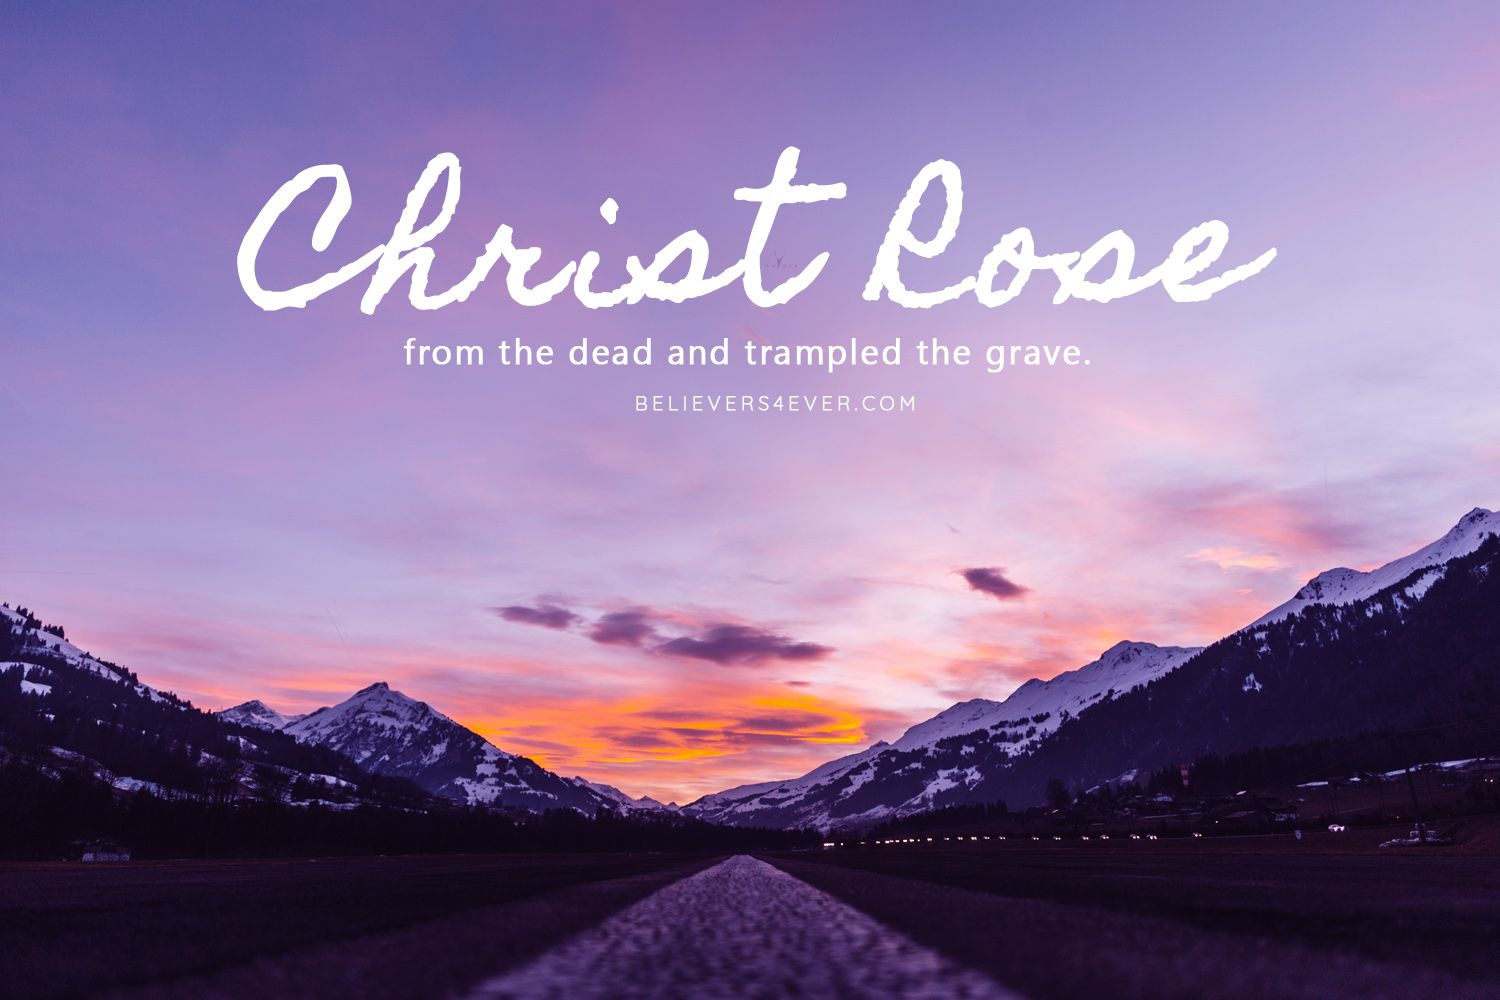 Christ rose from the dead Christian backgrounds, Free